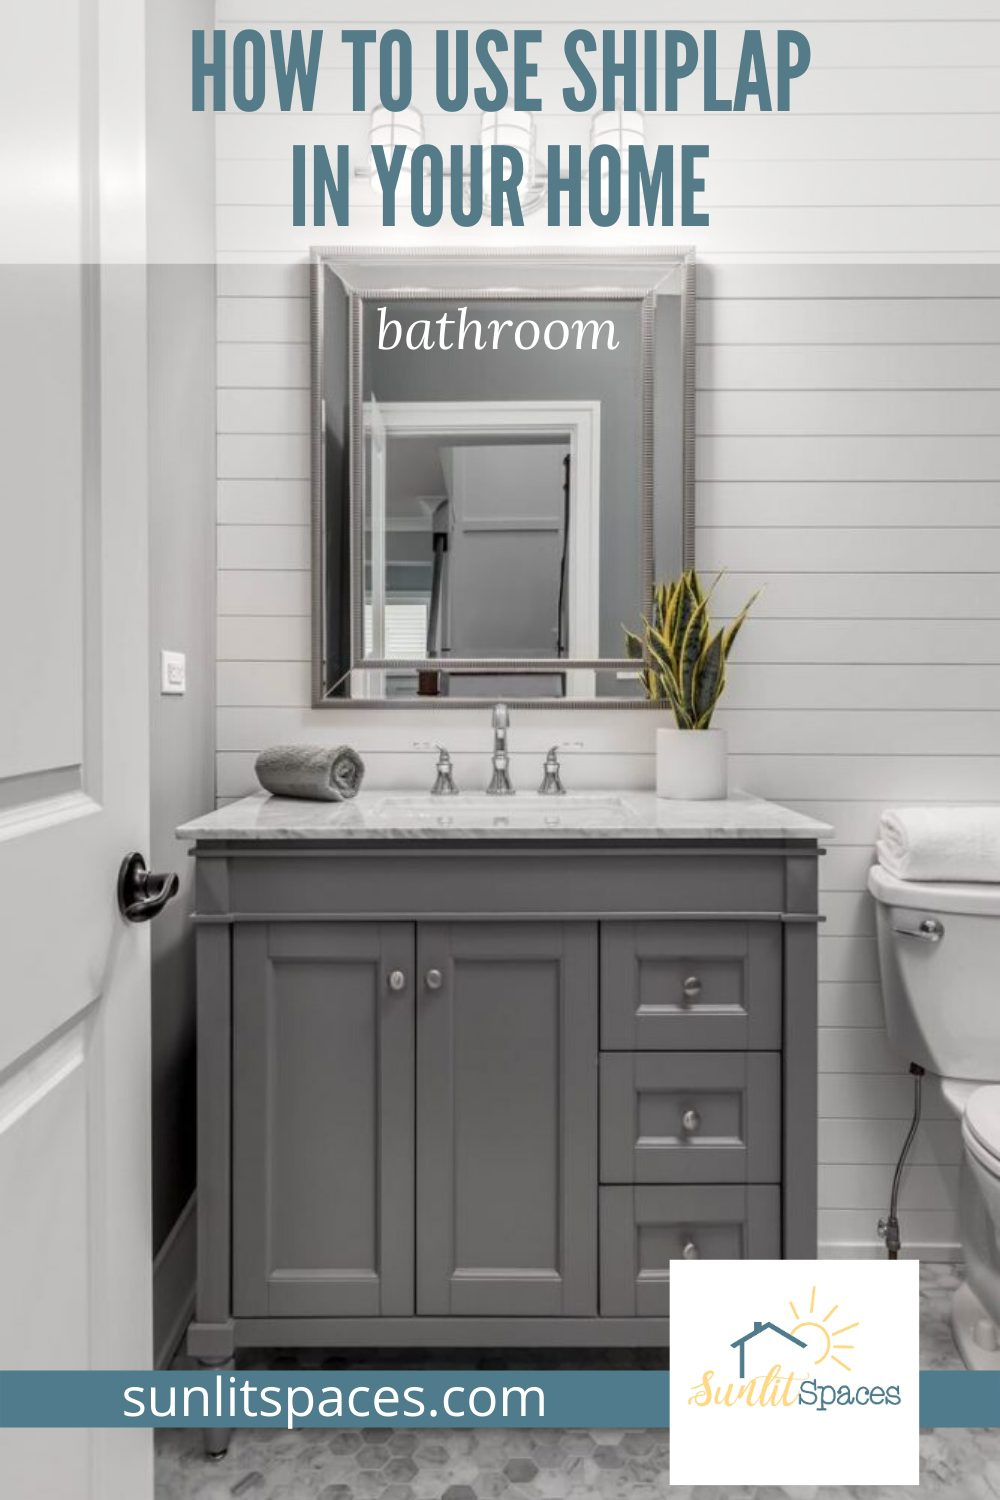 How to use shiplap in your home, in every room, and in some unexpected ways. Shiplap has a special appeal, and you don't have to live in a farmhouse to make it yours! #sunlitspacesblog #howtouseshiplapinyourhome